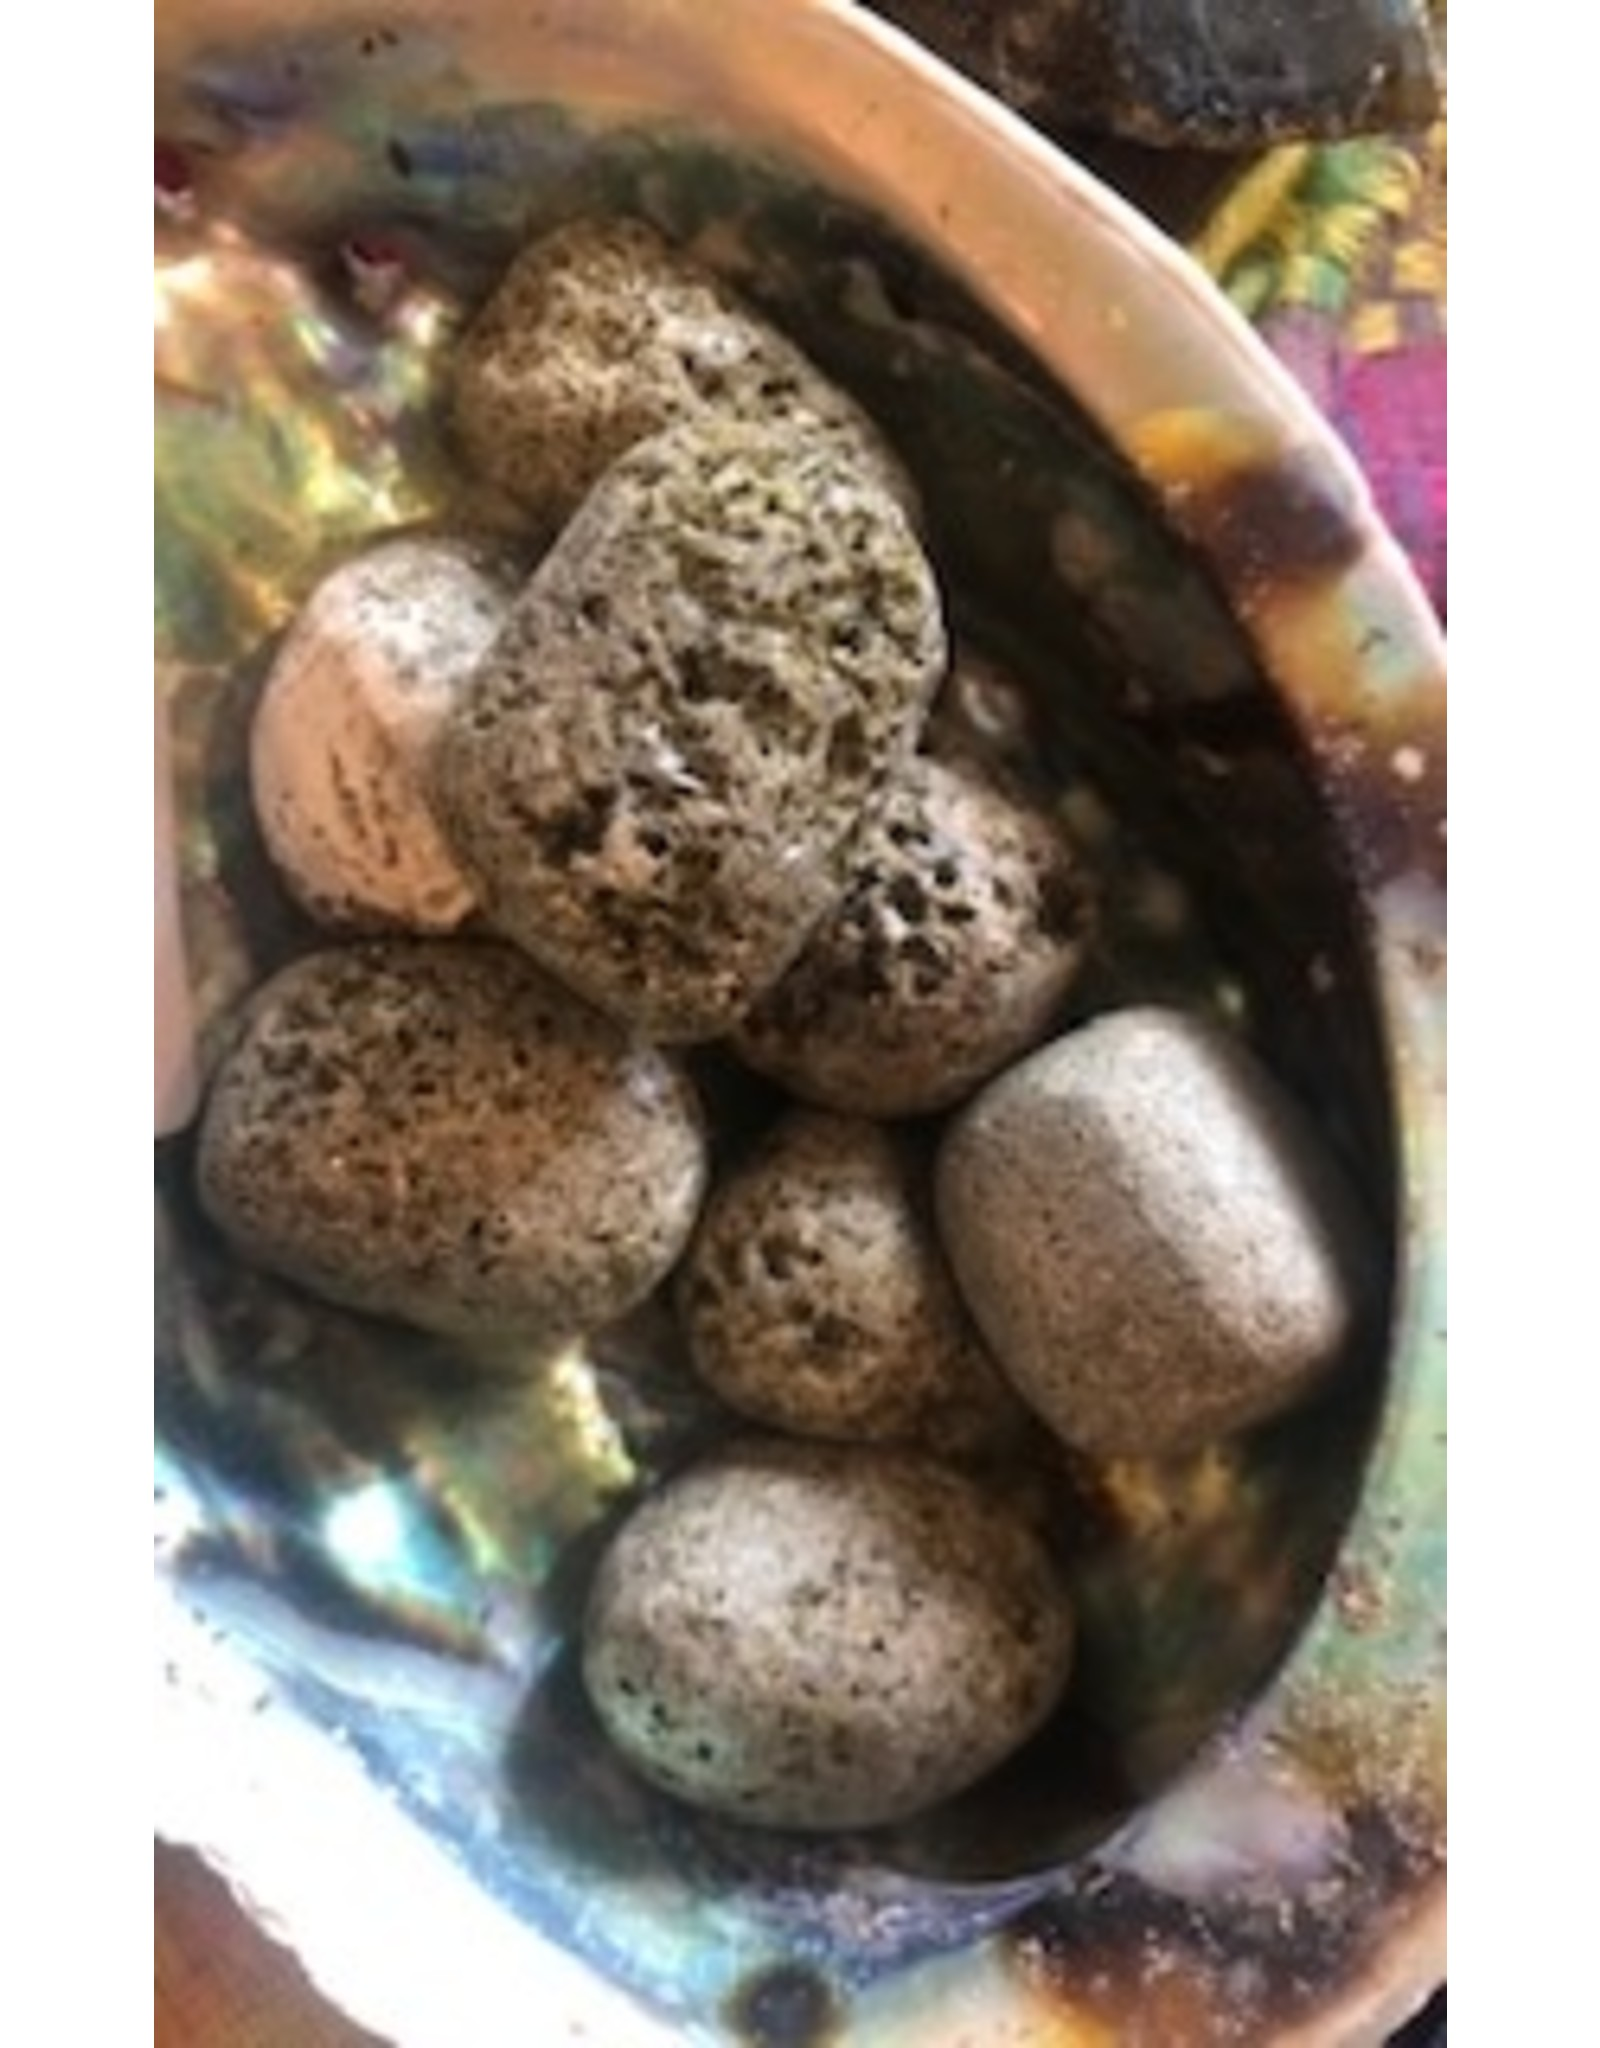 Epidote reminds you of the abundance of blessings for all